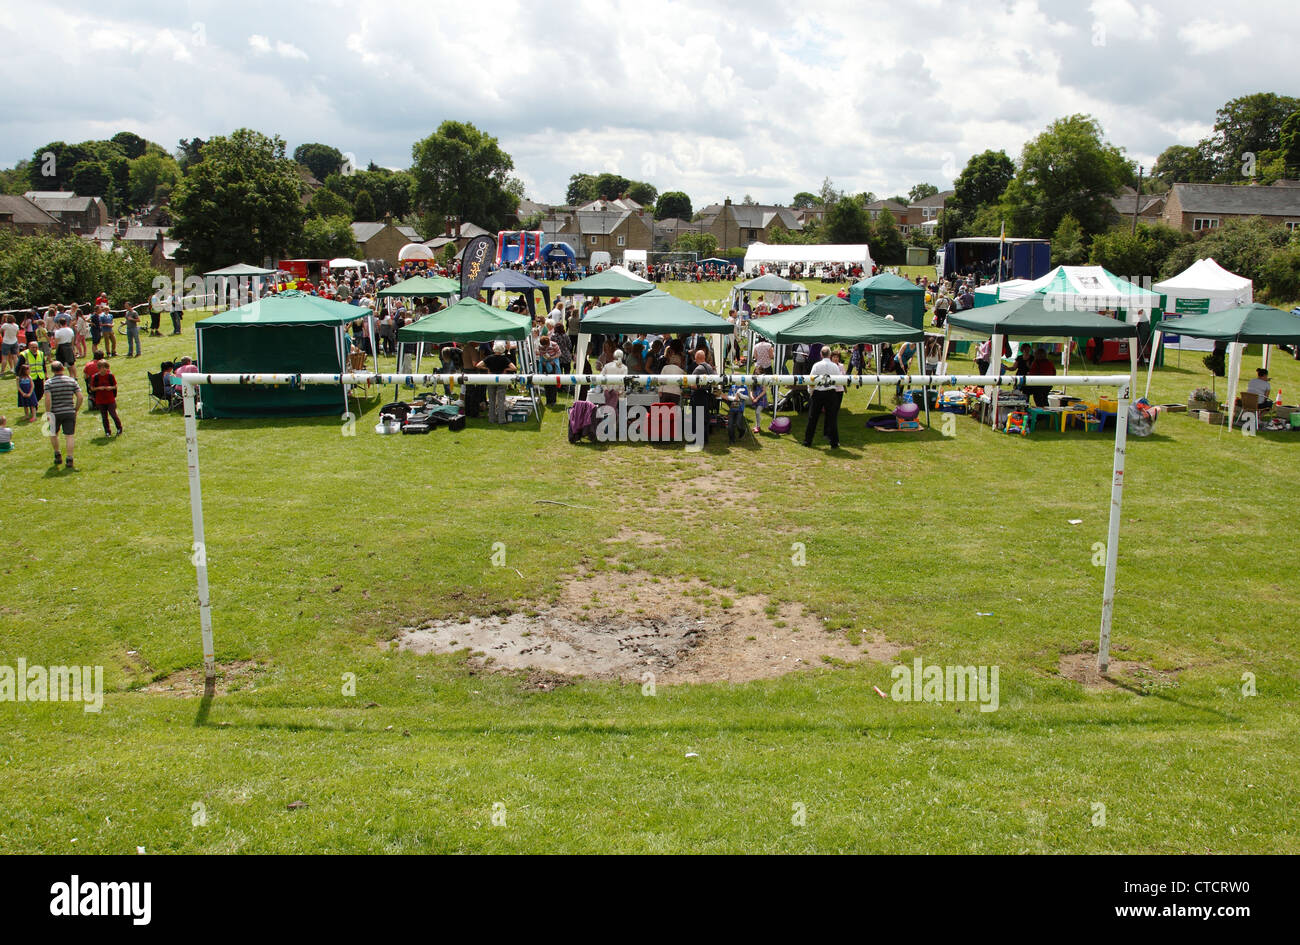 A village fete on a football pitch in Derbyshire, England, U.K. - Stock Image